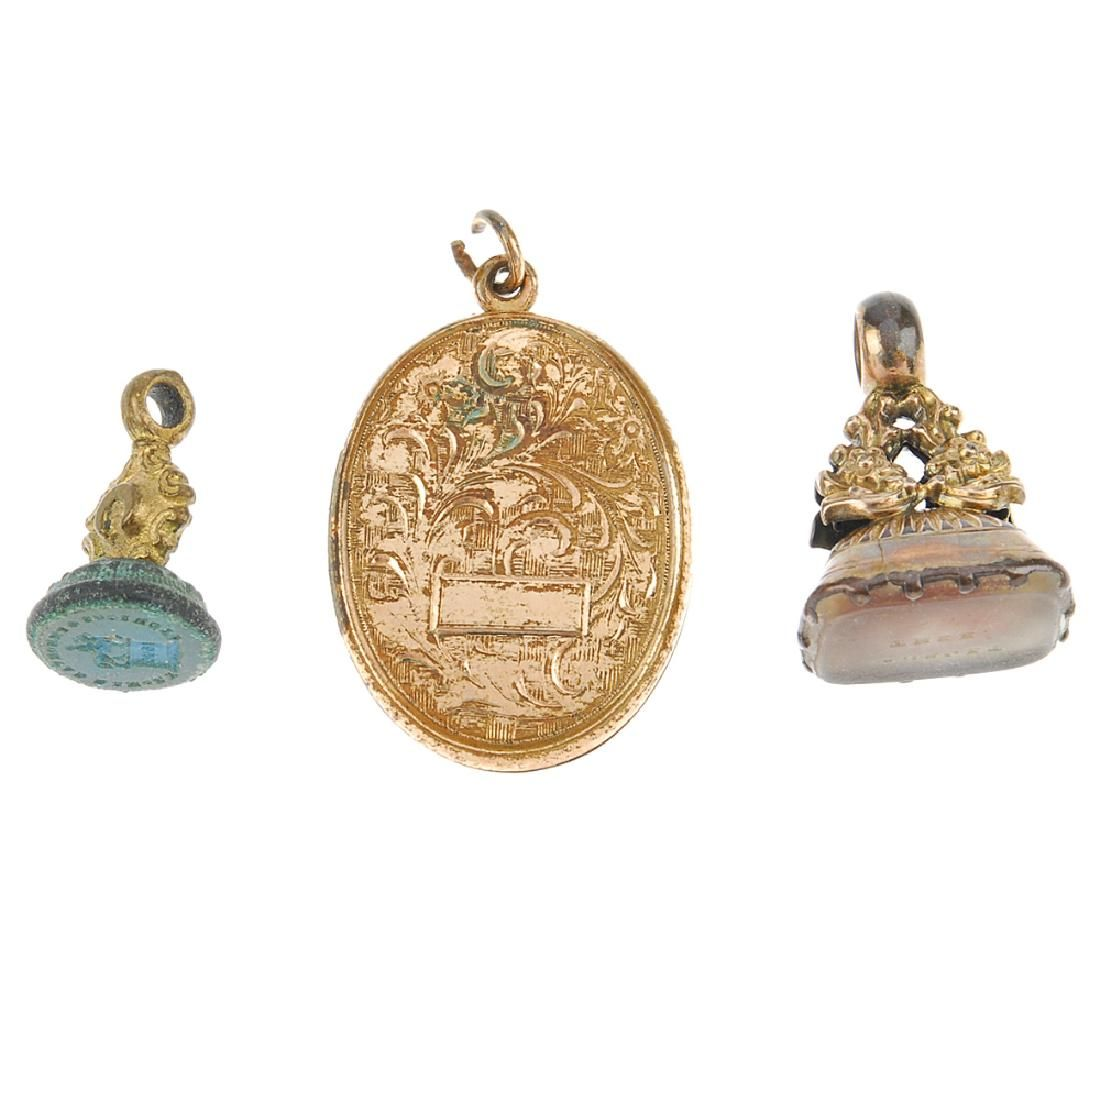 Two fobs and a locket. The locket of oval outline with